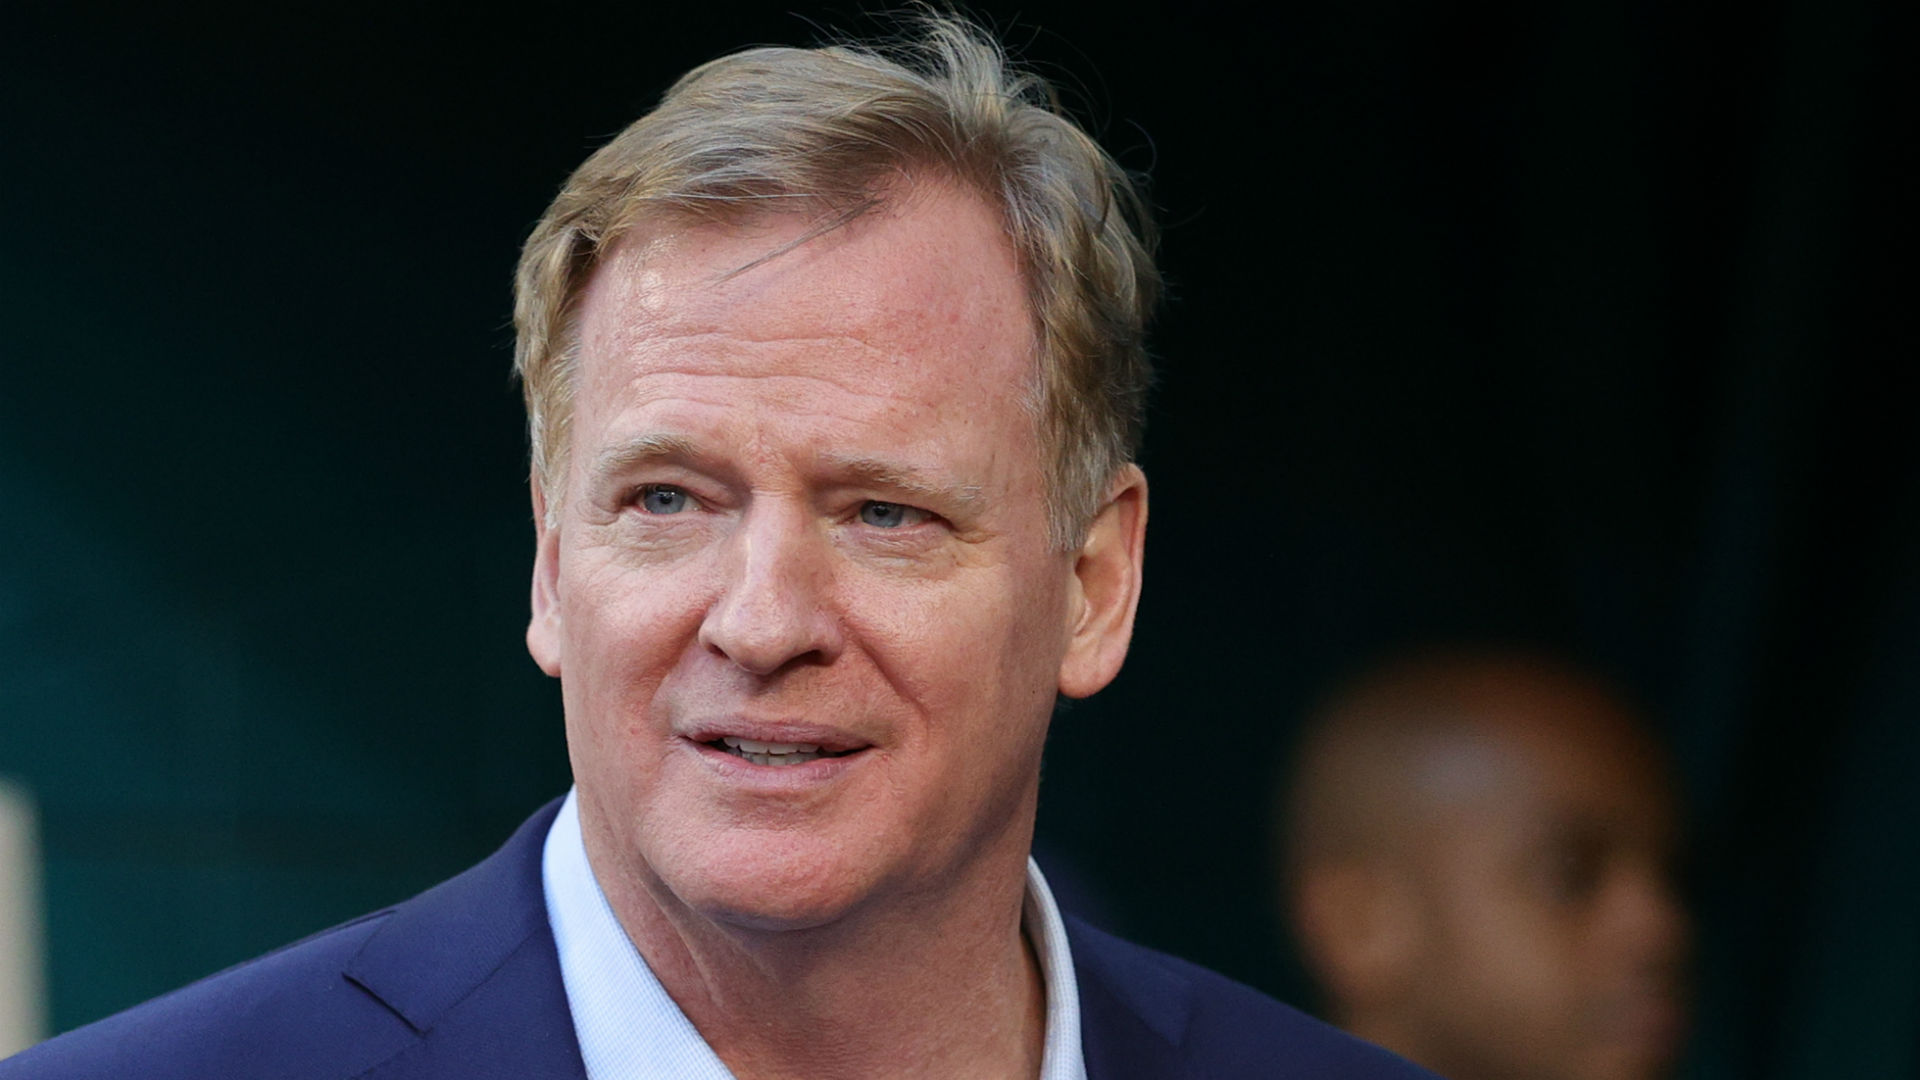 Roger Goodell says NFL won't release Washington Football Team investigation, Dan Snyder has been 'held accountable'